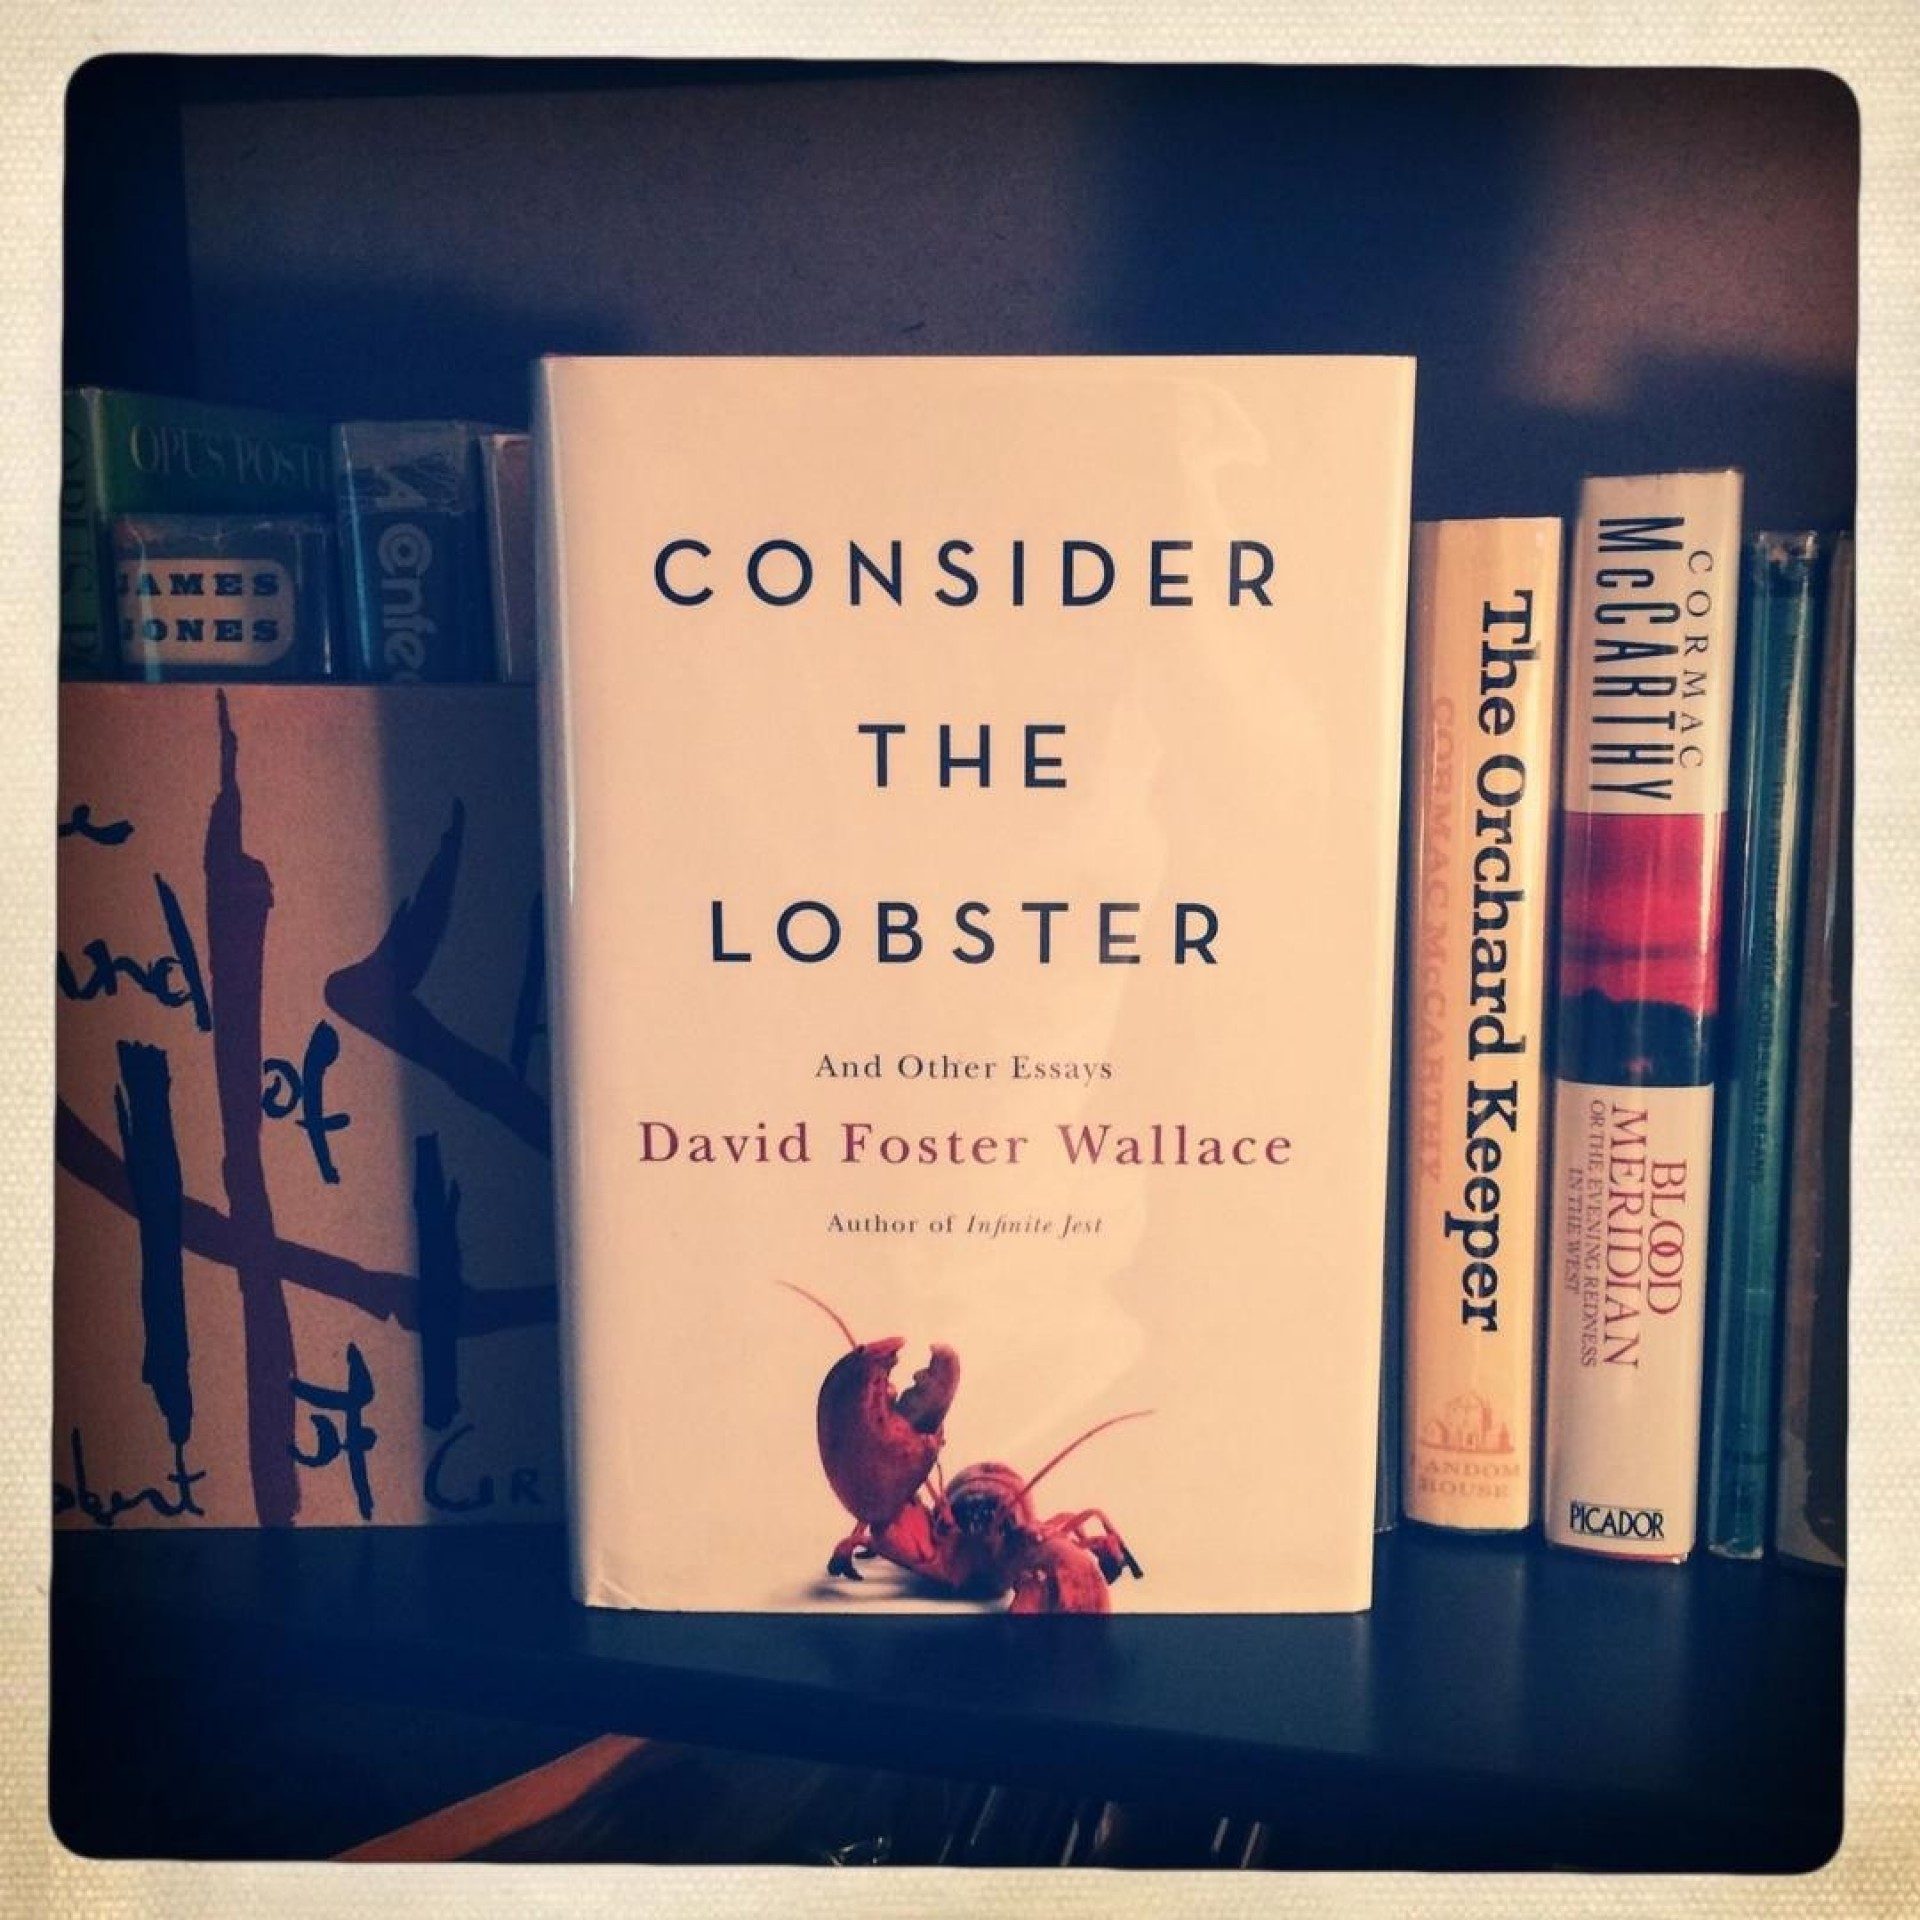 018 David Foster Wallace Signed Consider 1 6f8915f8f9d063b400975e211b89ef27 Essays Essay Formidable Amazon And The Long Thing New On Novels Cruise Ship 1920